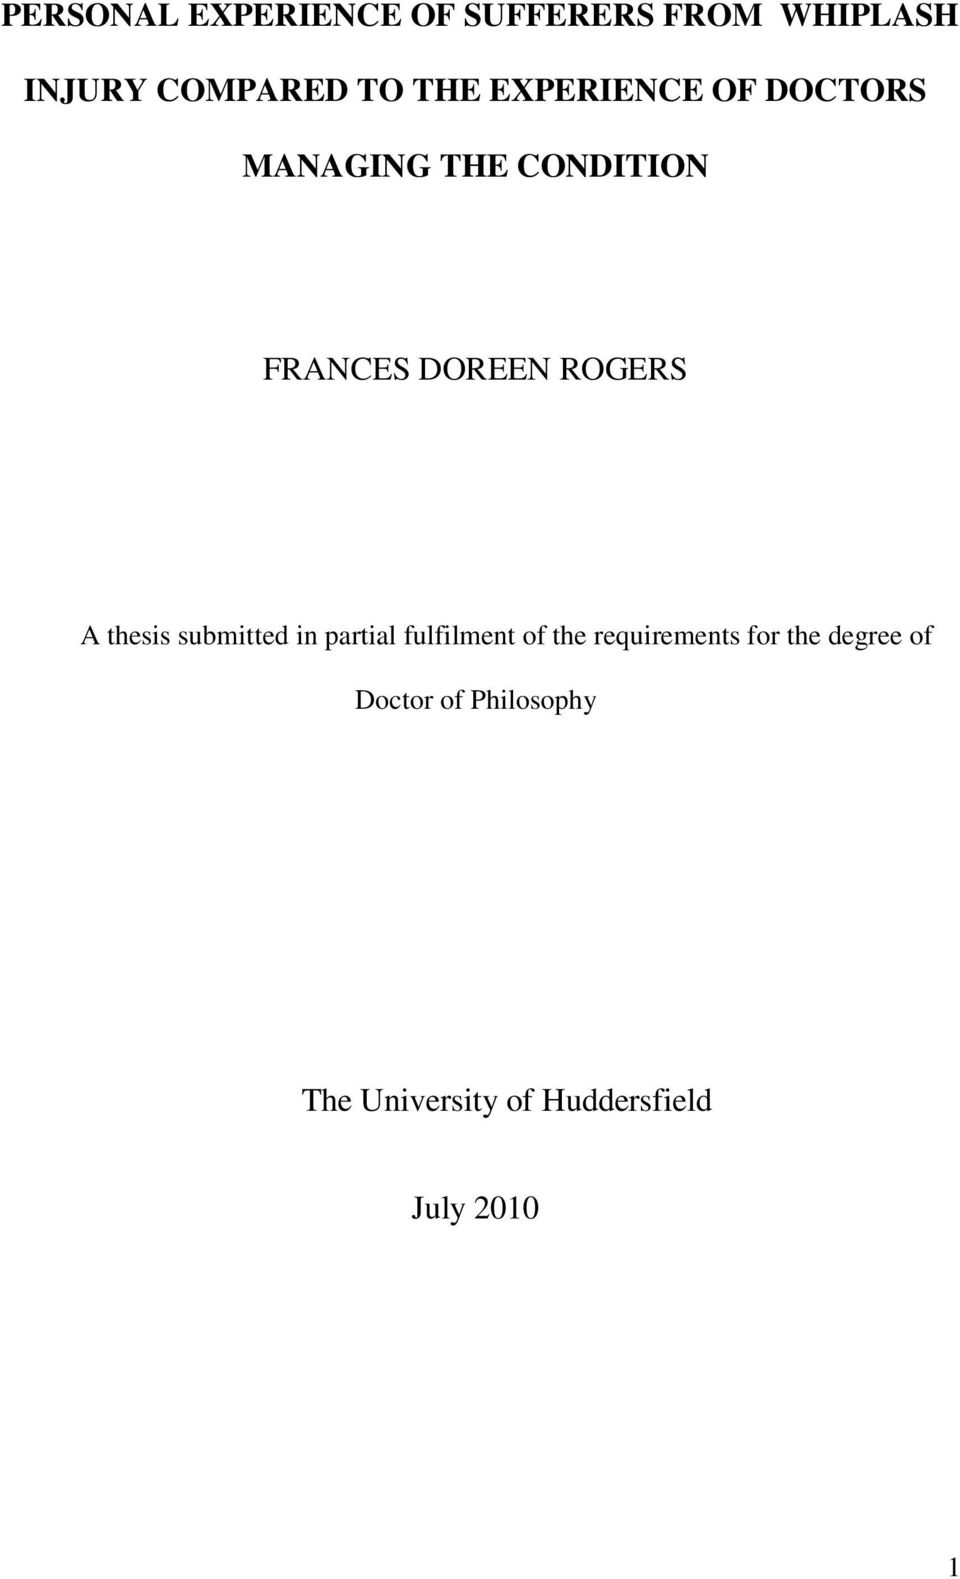 thesis submitted in partial fulfilment of the requirements for the